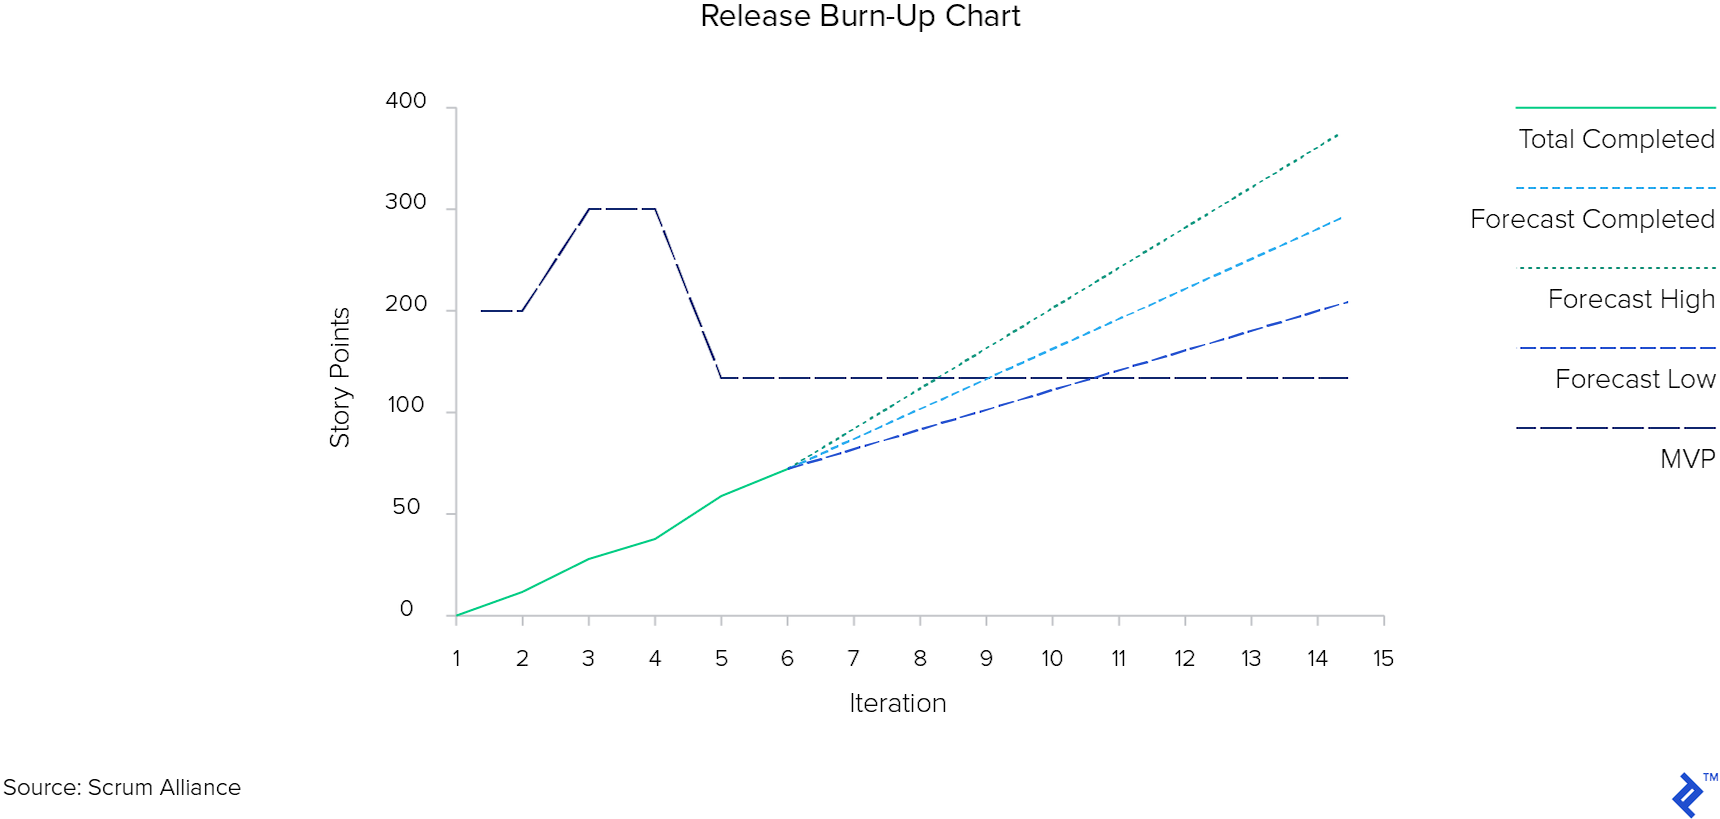 Sample release burn-up chart.